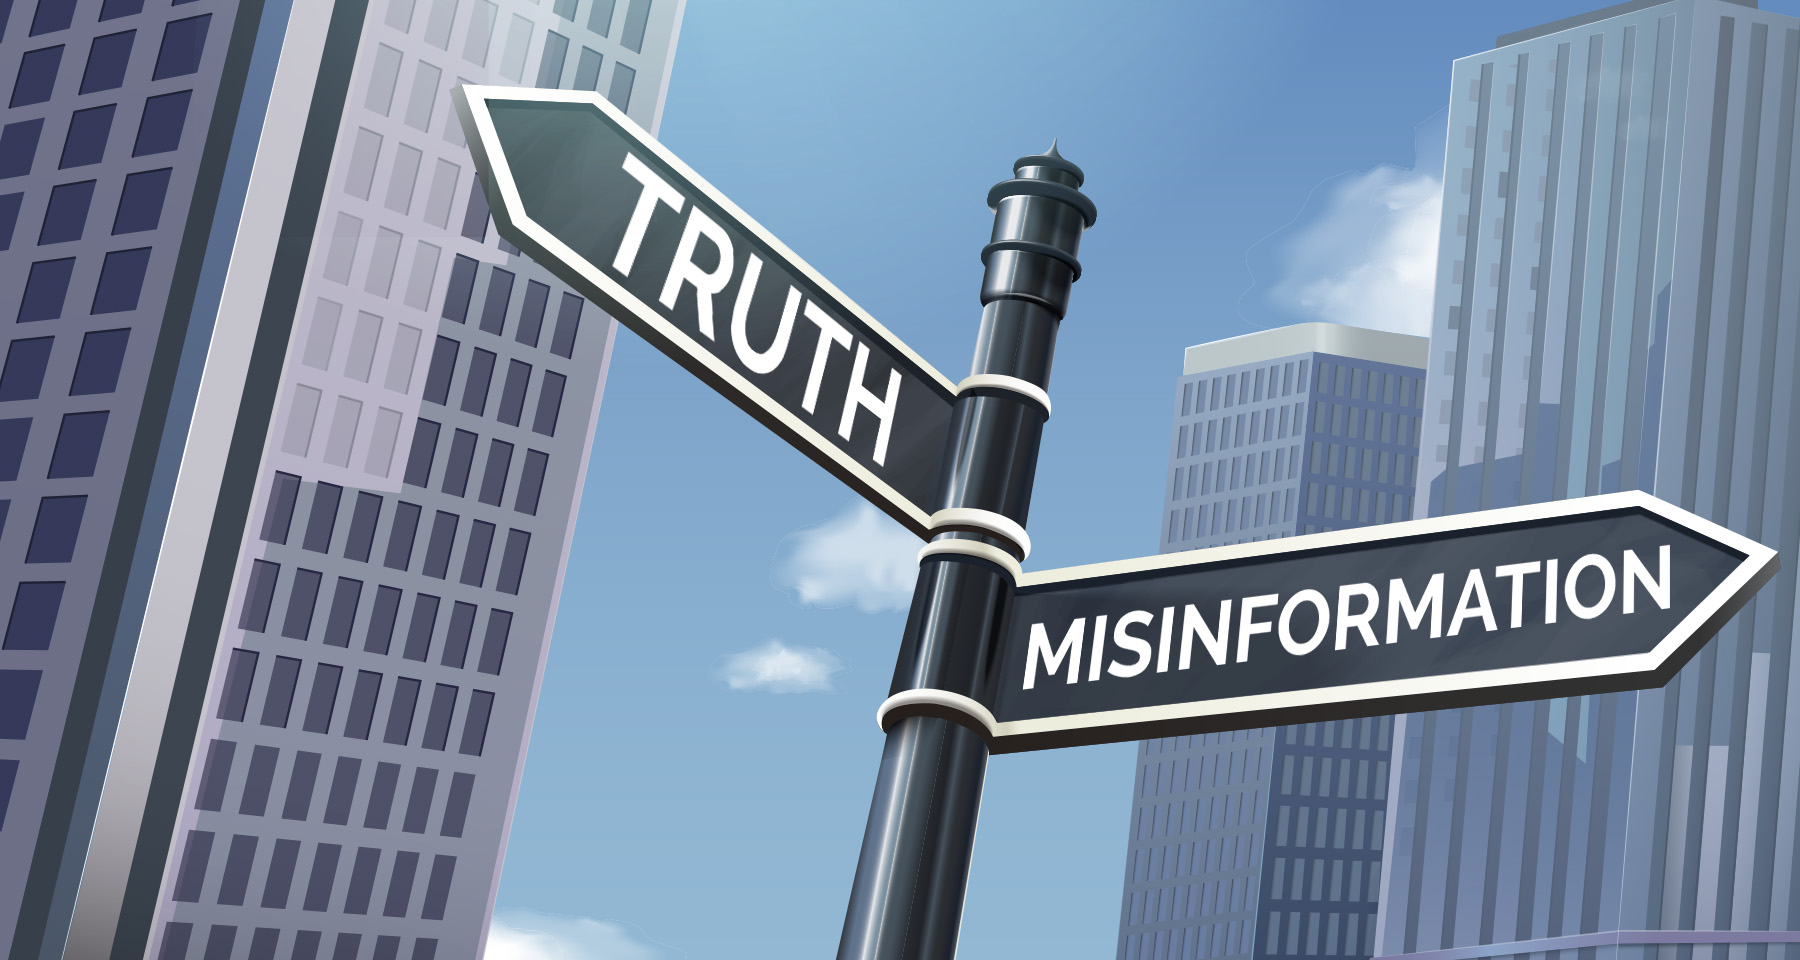 Marketing local truth in a world of misinformation